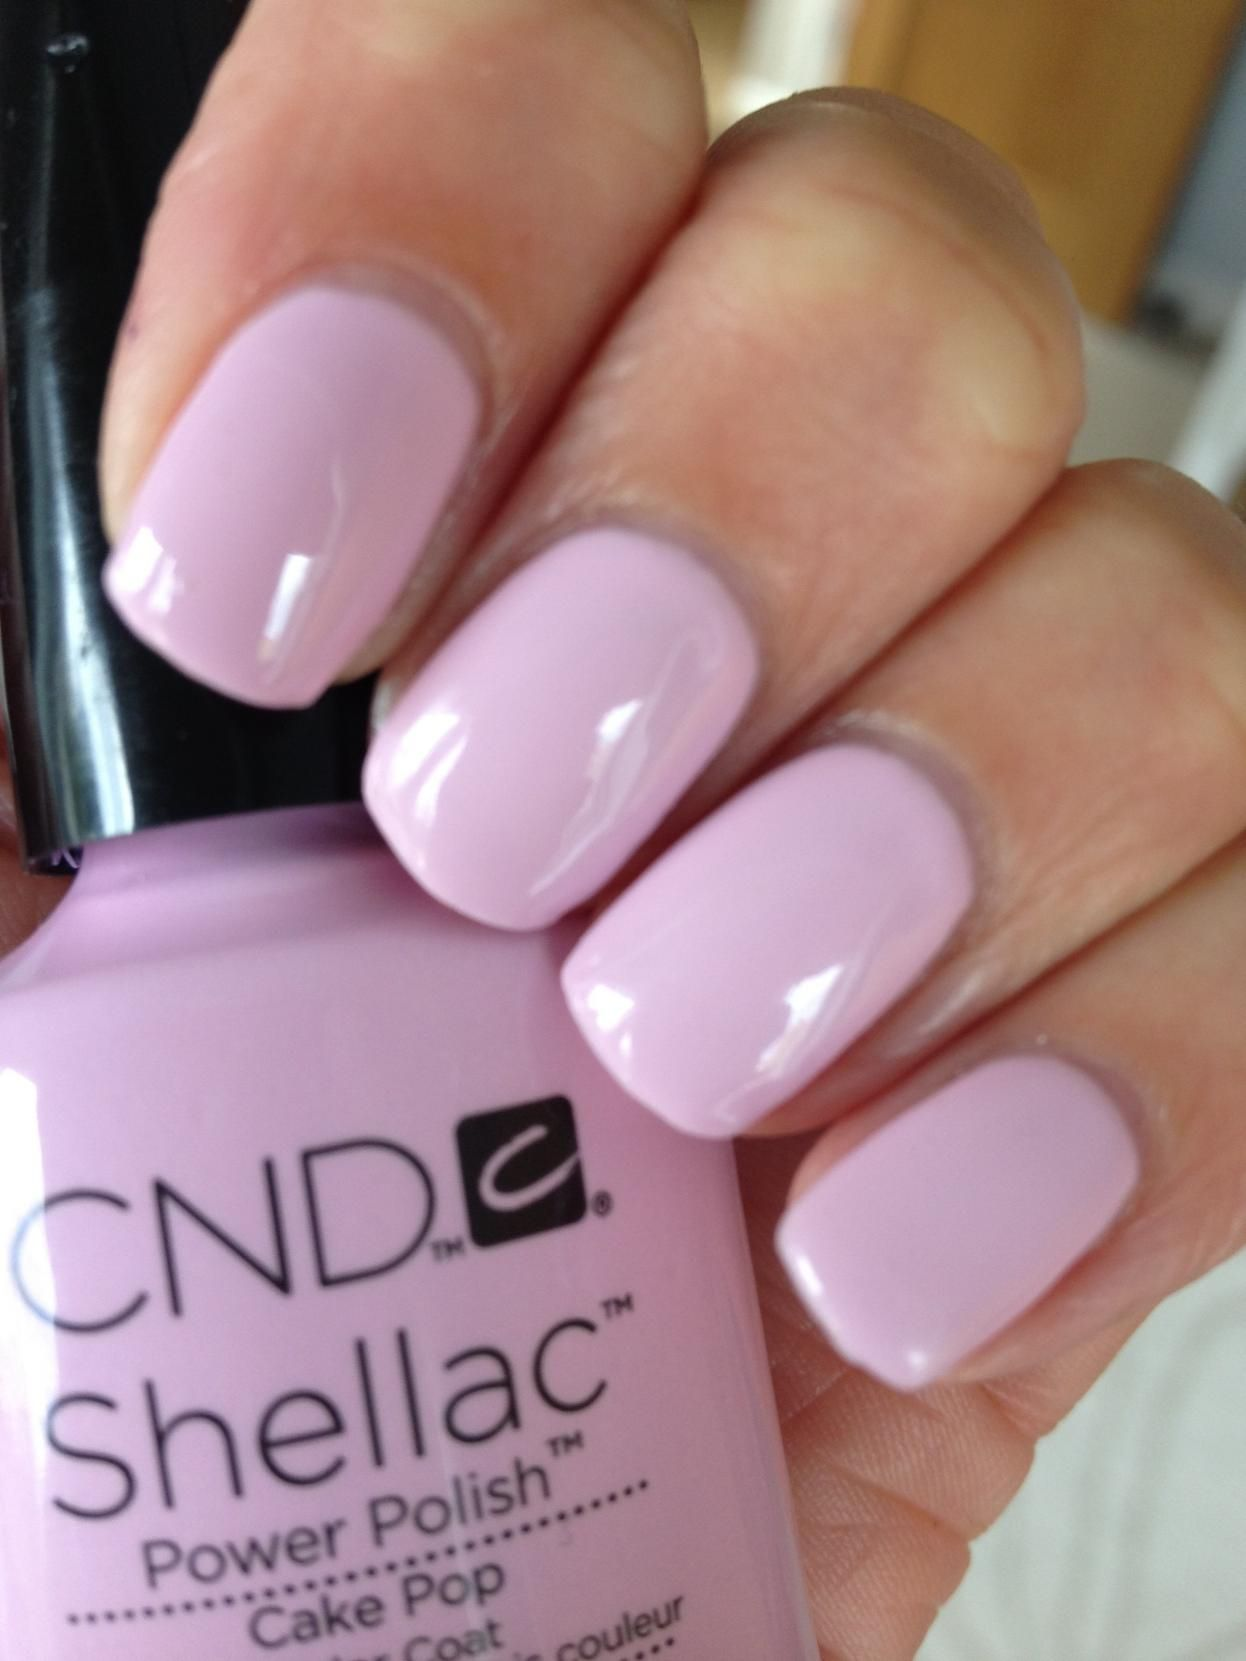 Spring Shellac Colours Now Available Toughened For 14 Day Wear Buy One Get Cheaper Free On Certain Days 01786 812852 Spabannockburncouk